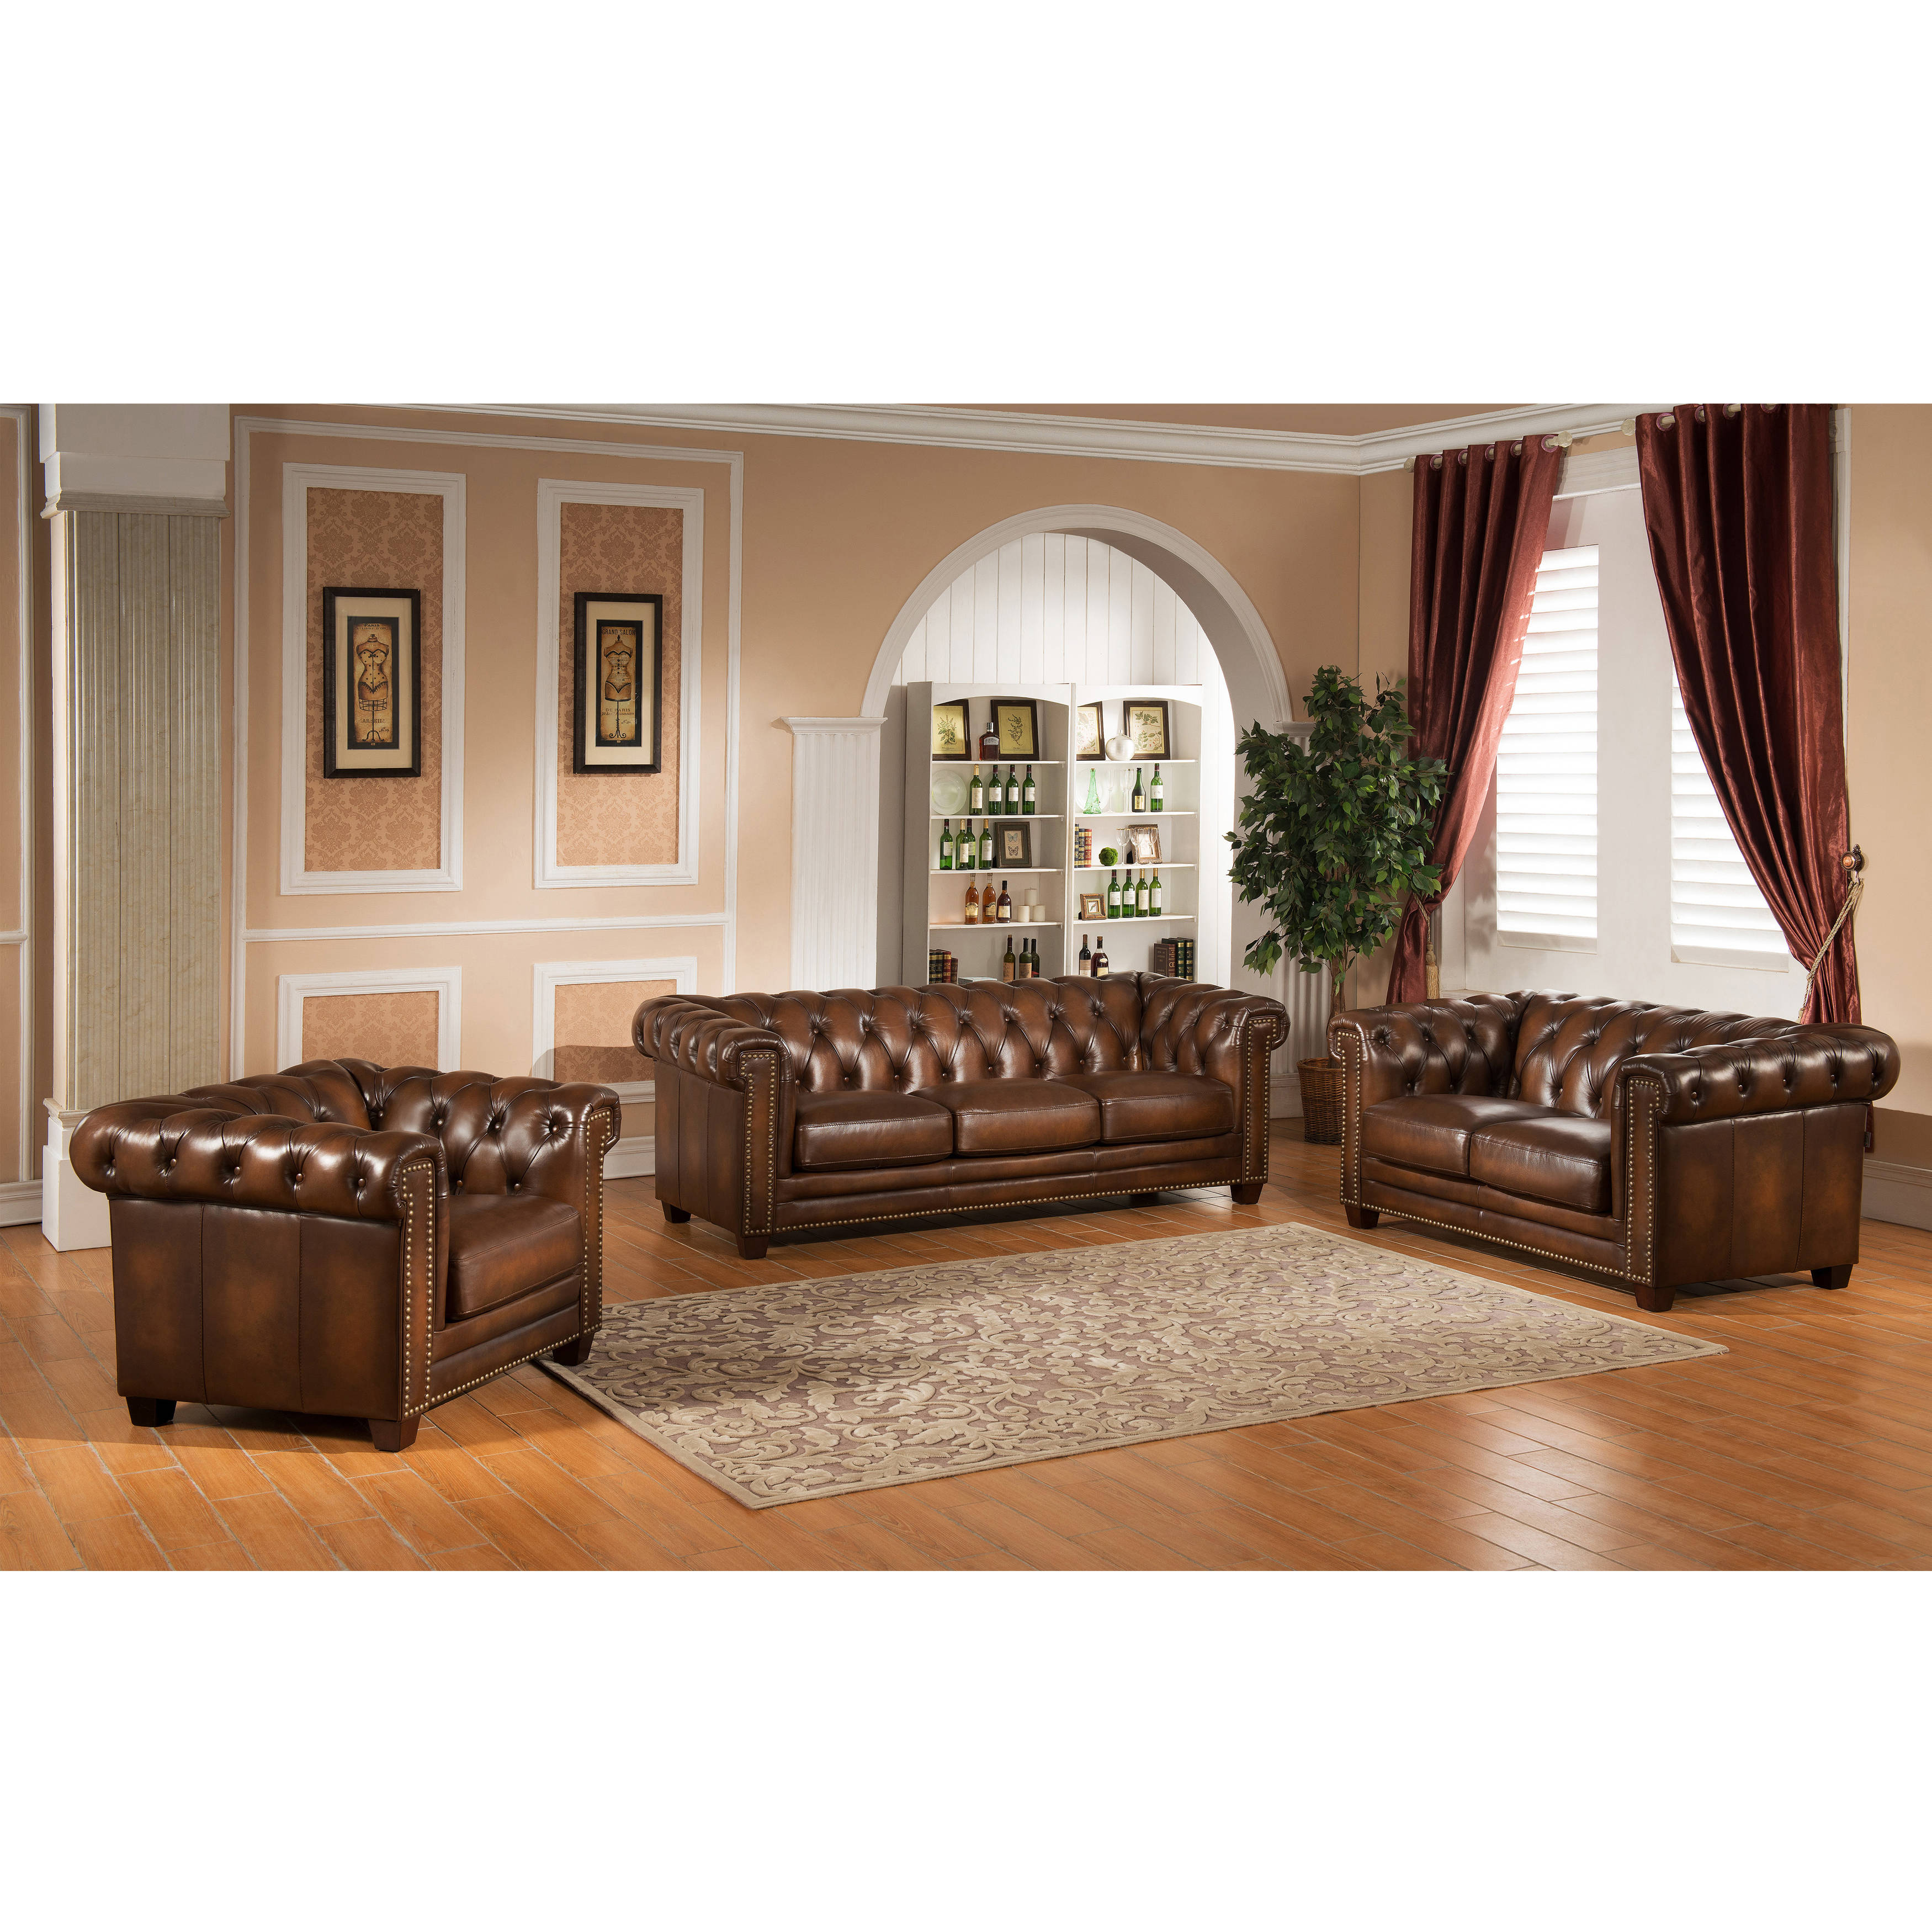 Amax Leather Stanley Park II Brown 3pc Living Room Set | The Classy Home